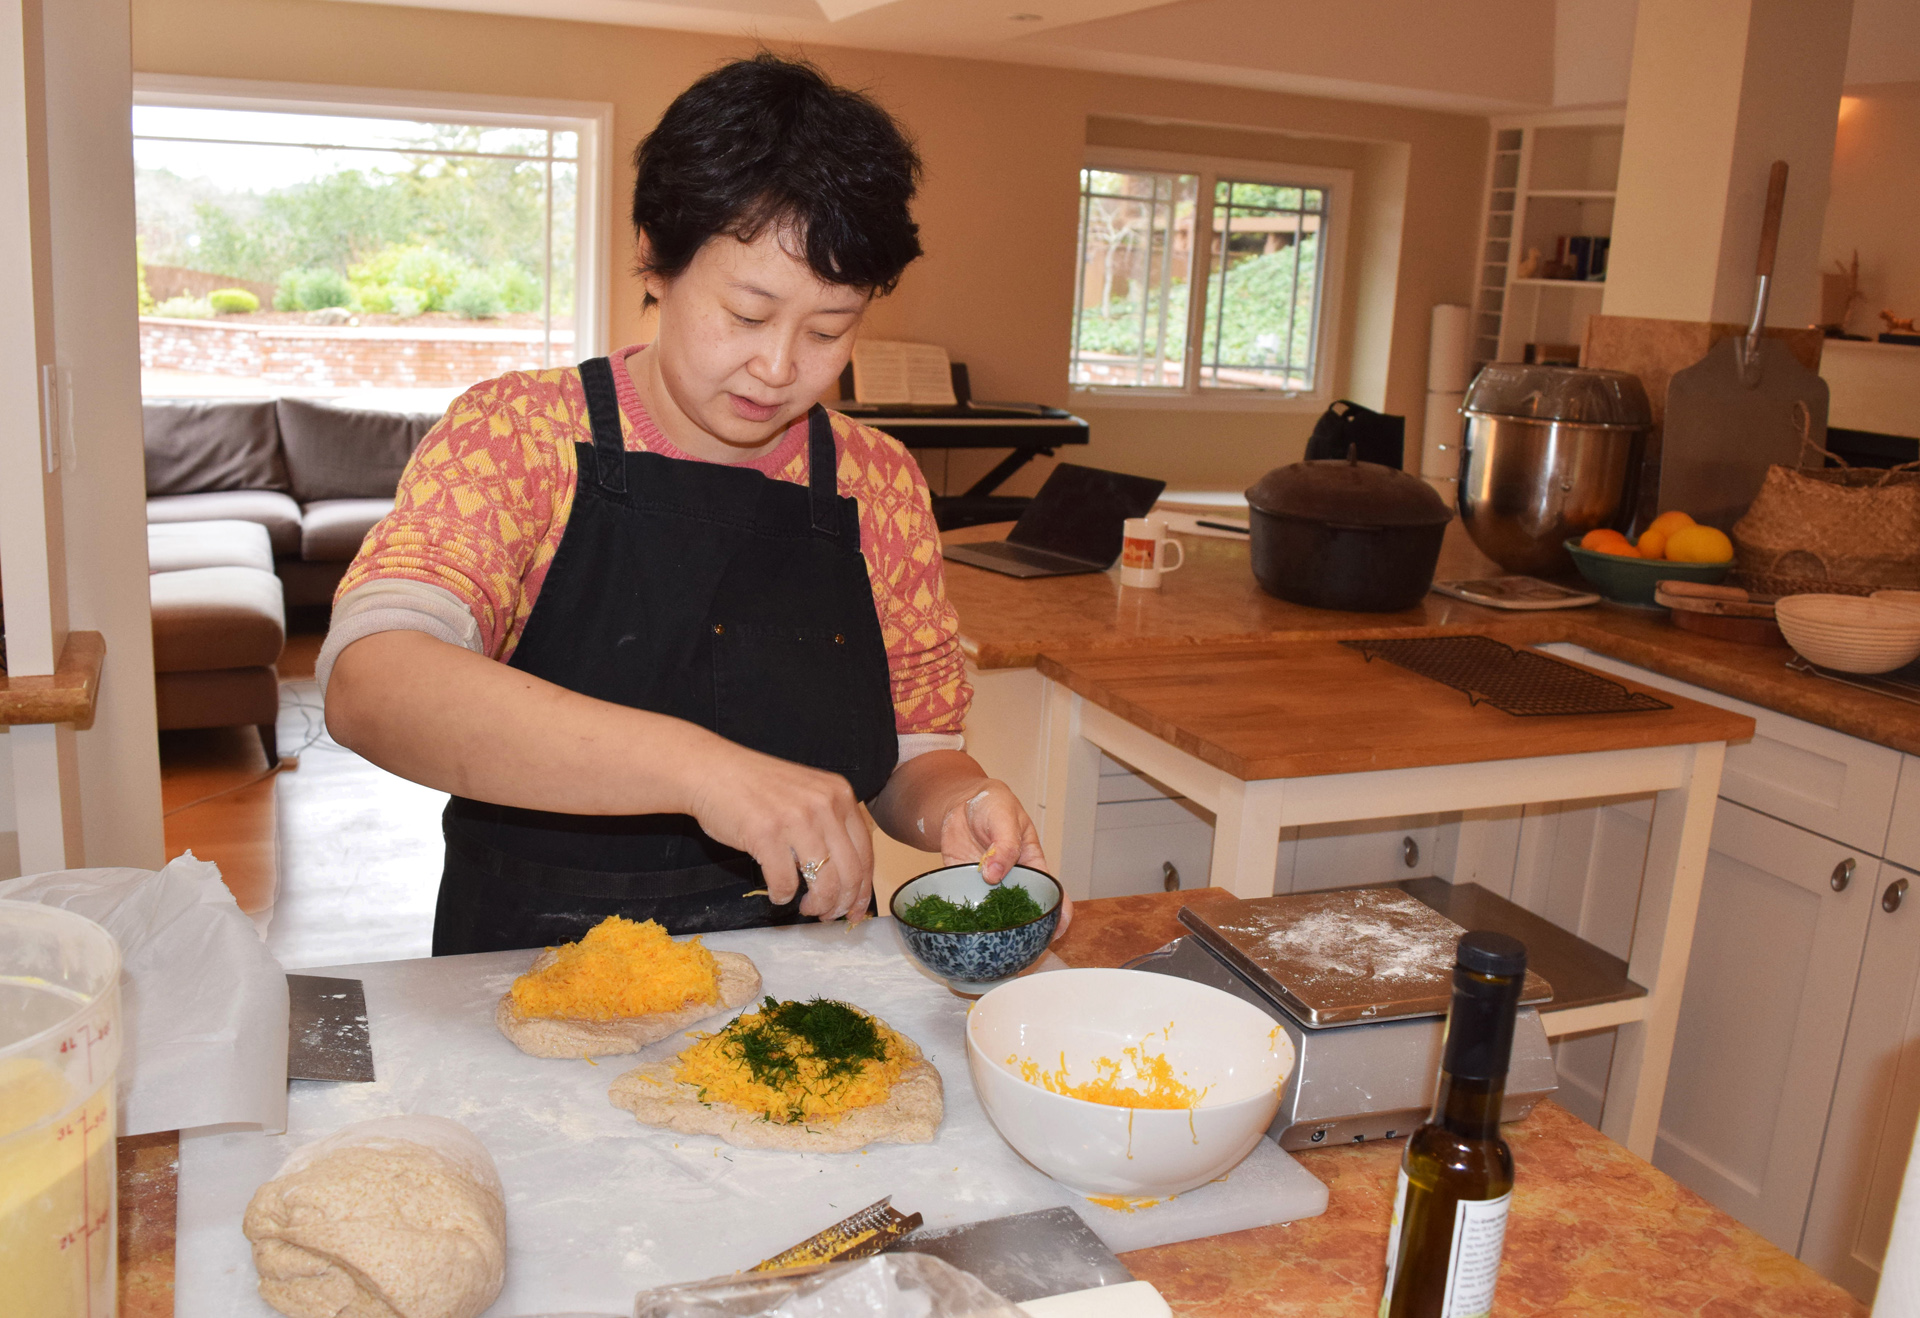 Bakery founder Tian Mayimin makes a wide variety of naturally leavened breads in her kitchen in Menlo Park, such as yummy, cheese-filled rolls.